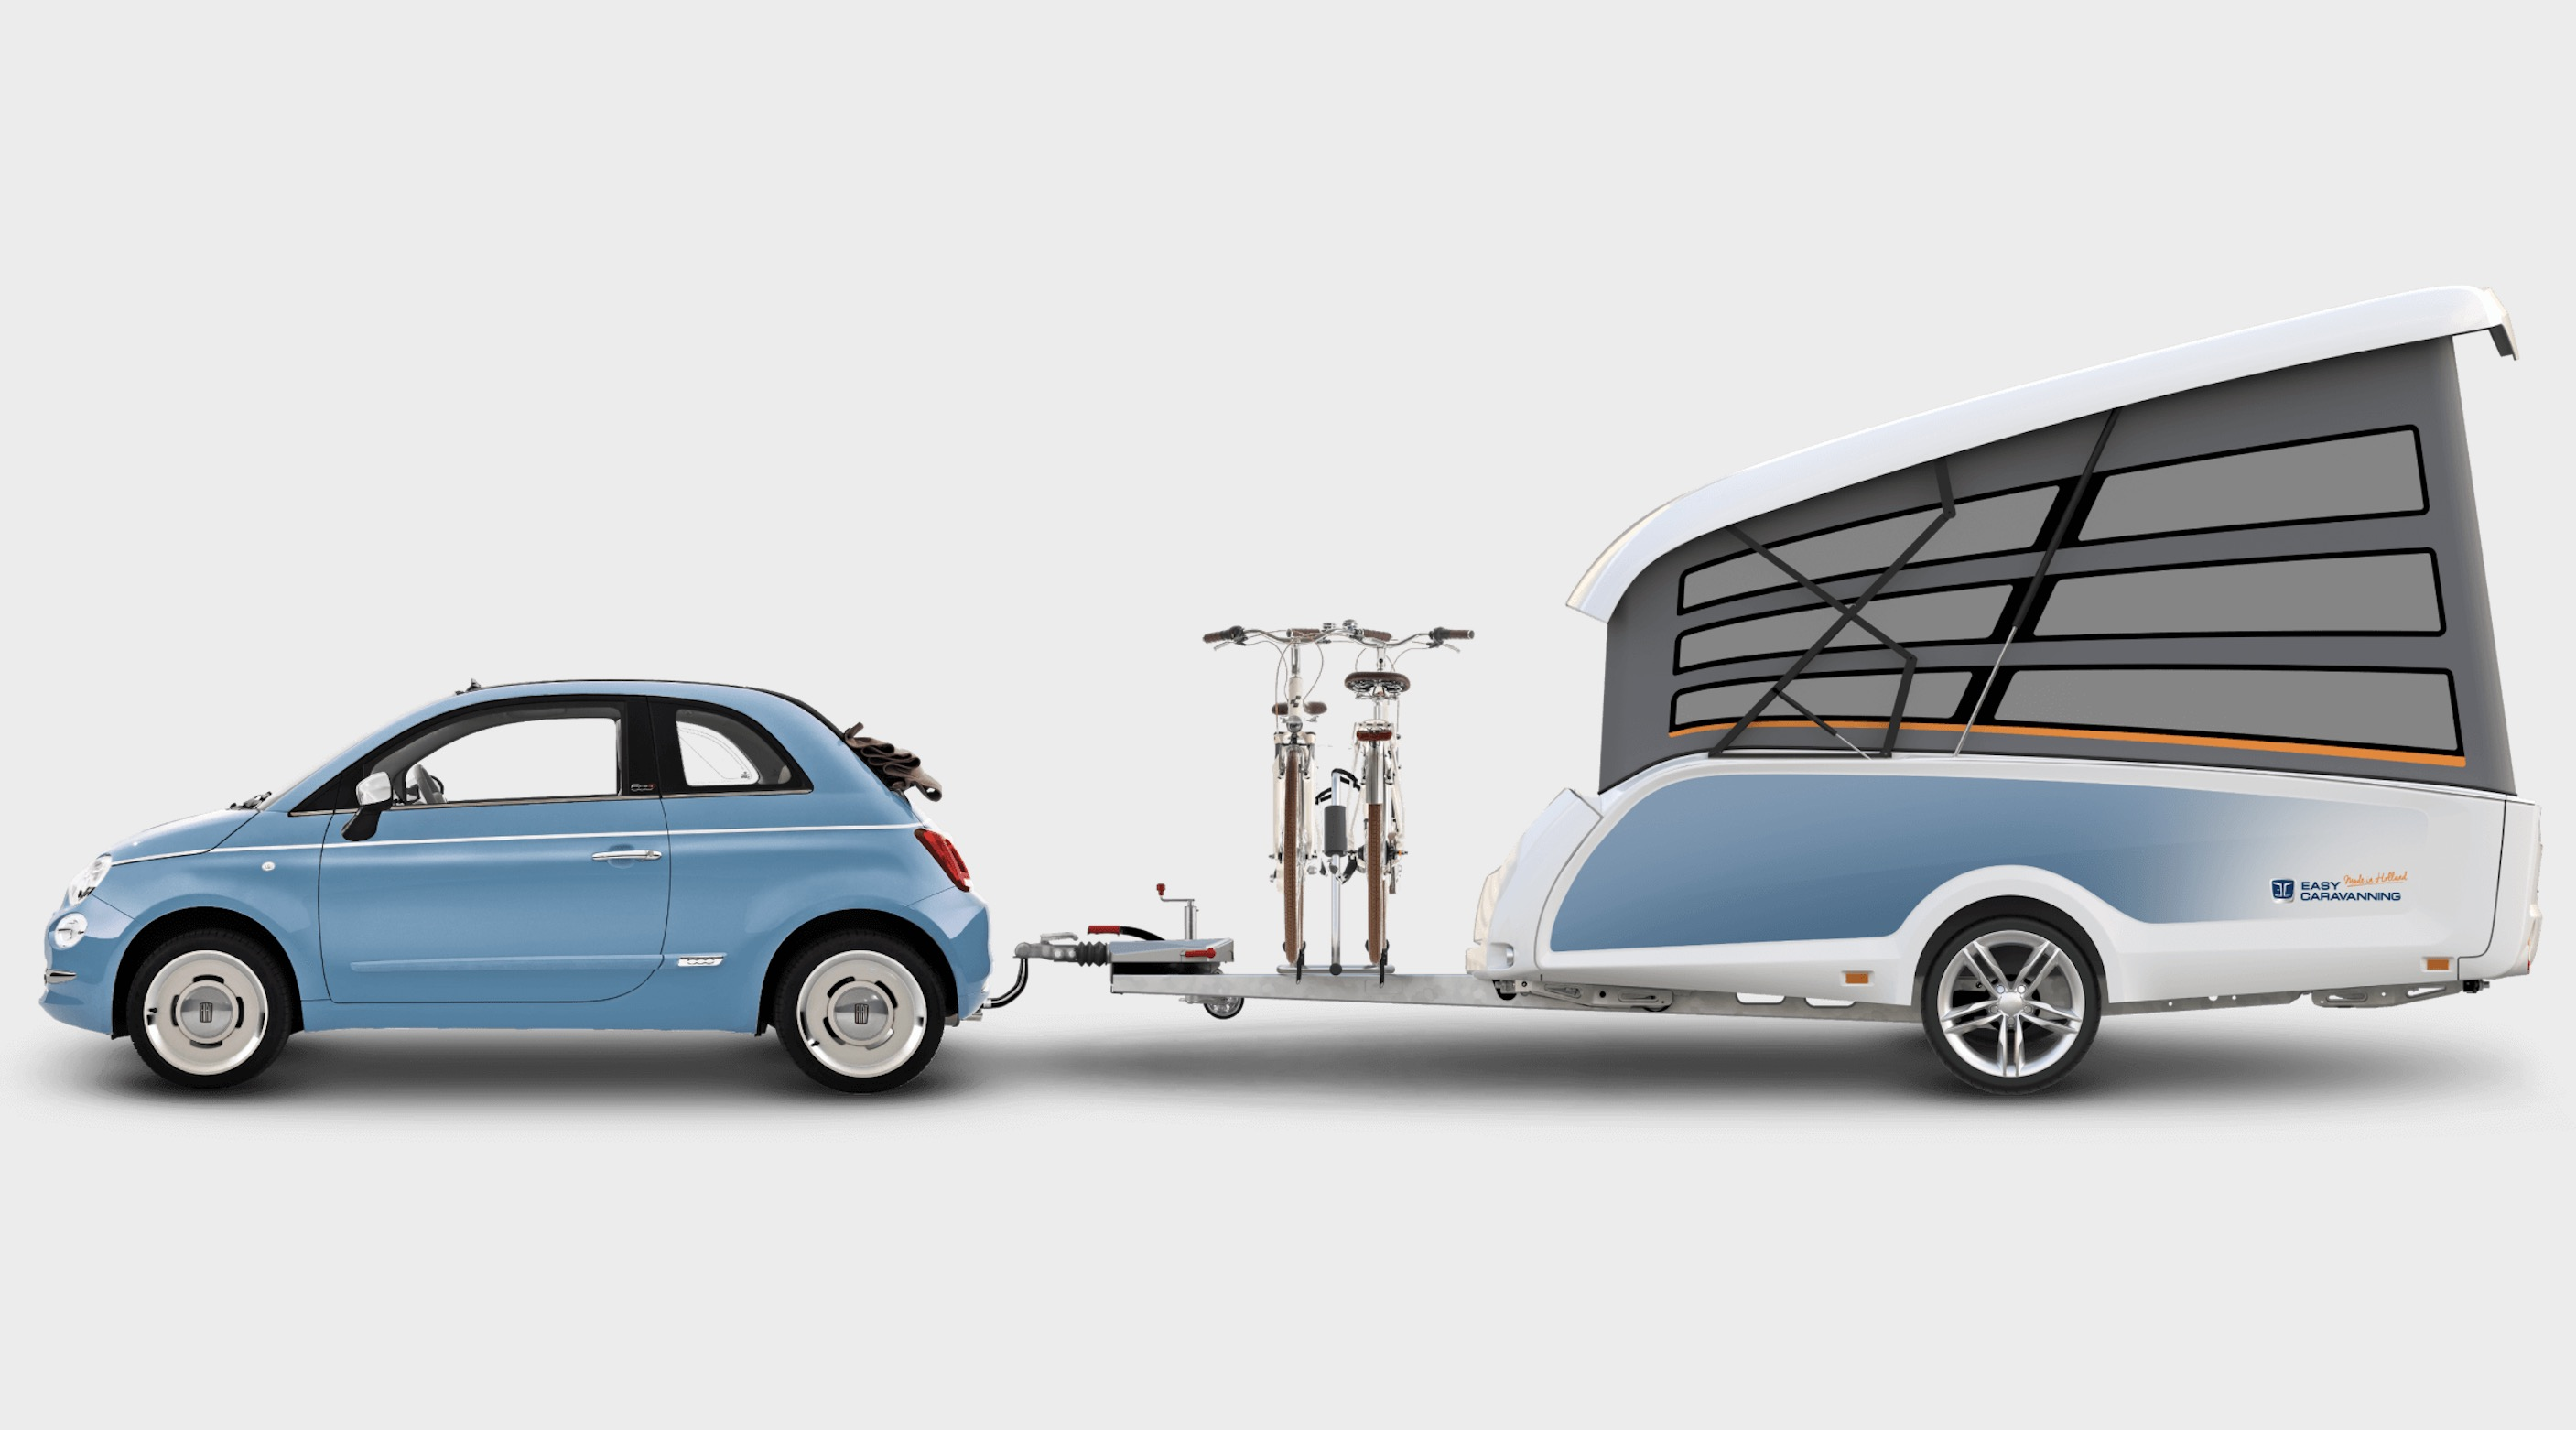 Tiny pop-up trailer can be towed by almost any car